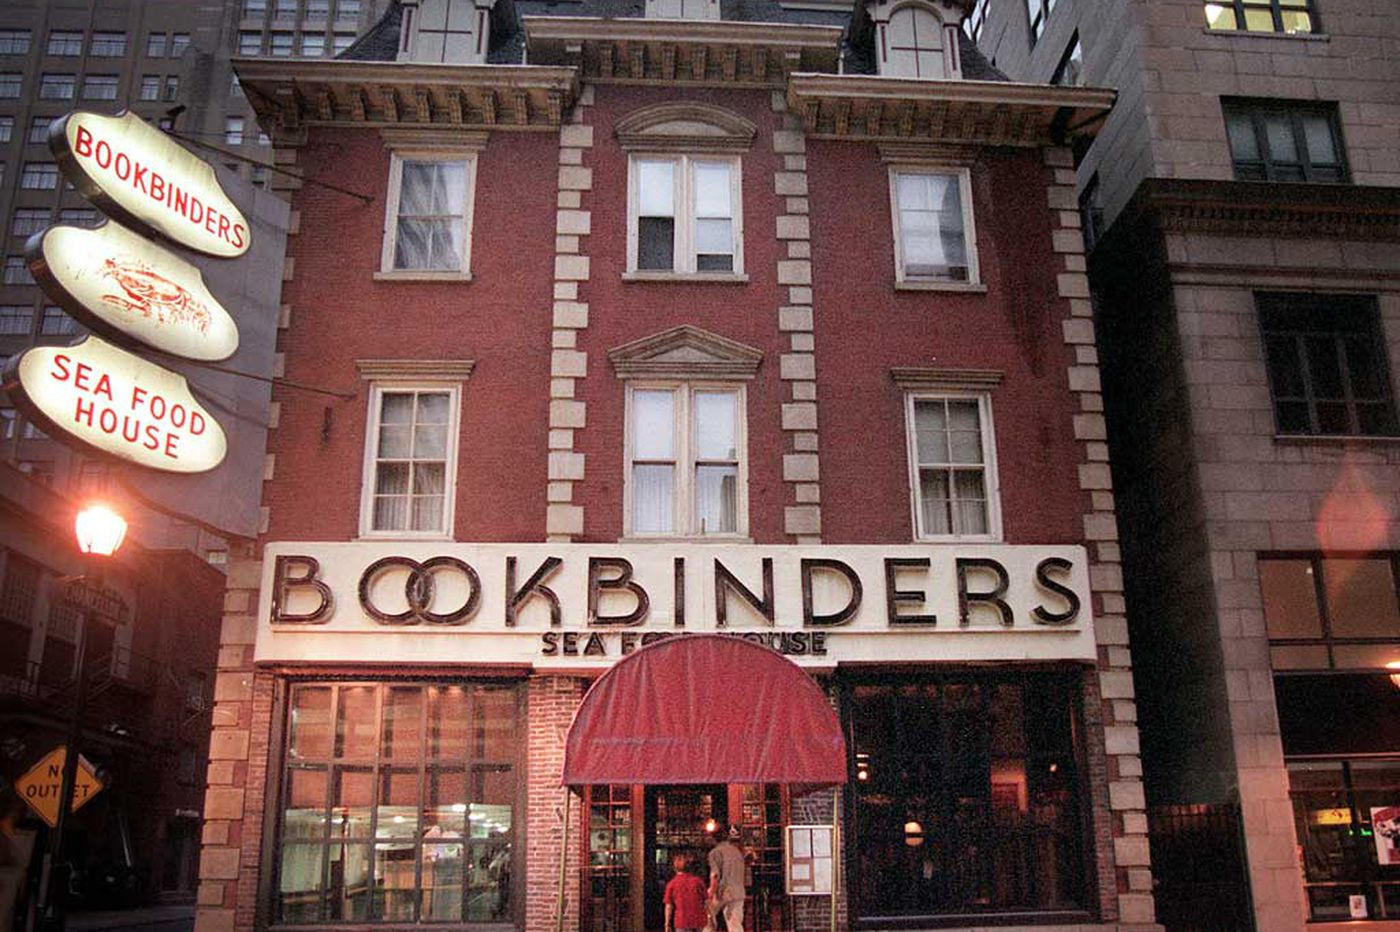 A look at the two Bookbinders restaurants